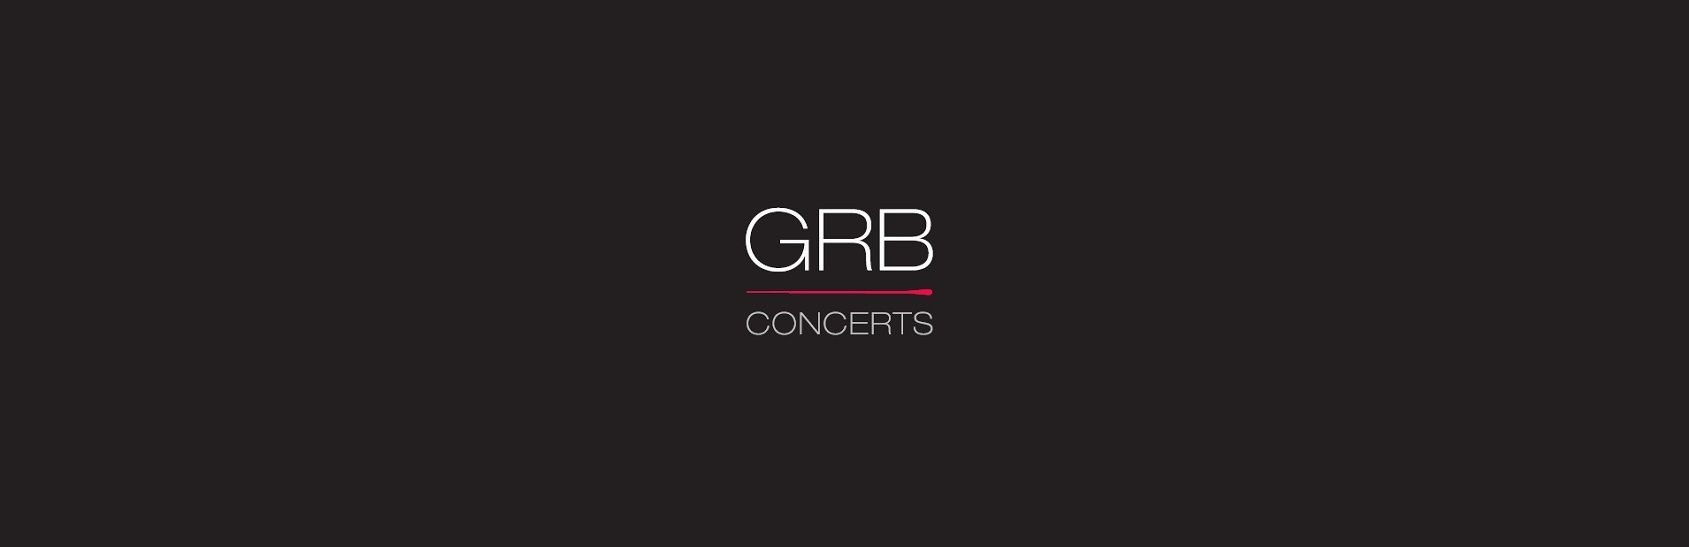 GRB Concerts